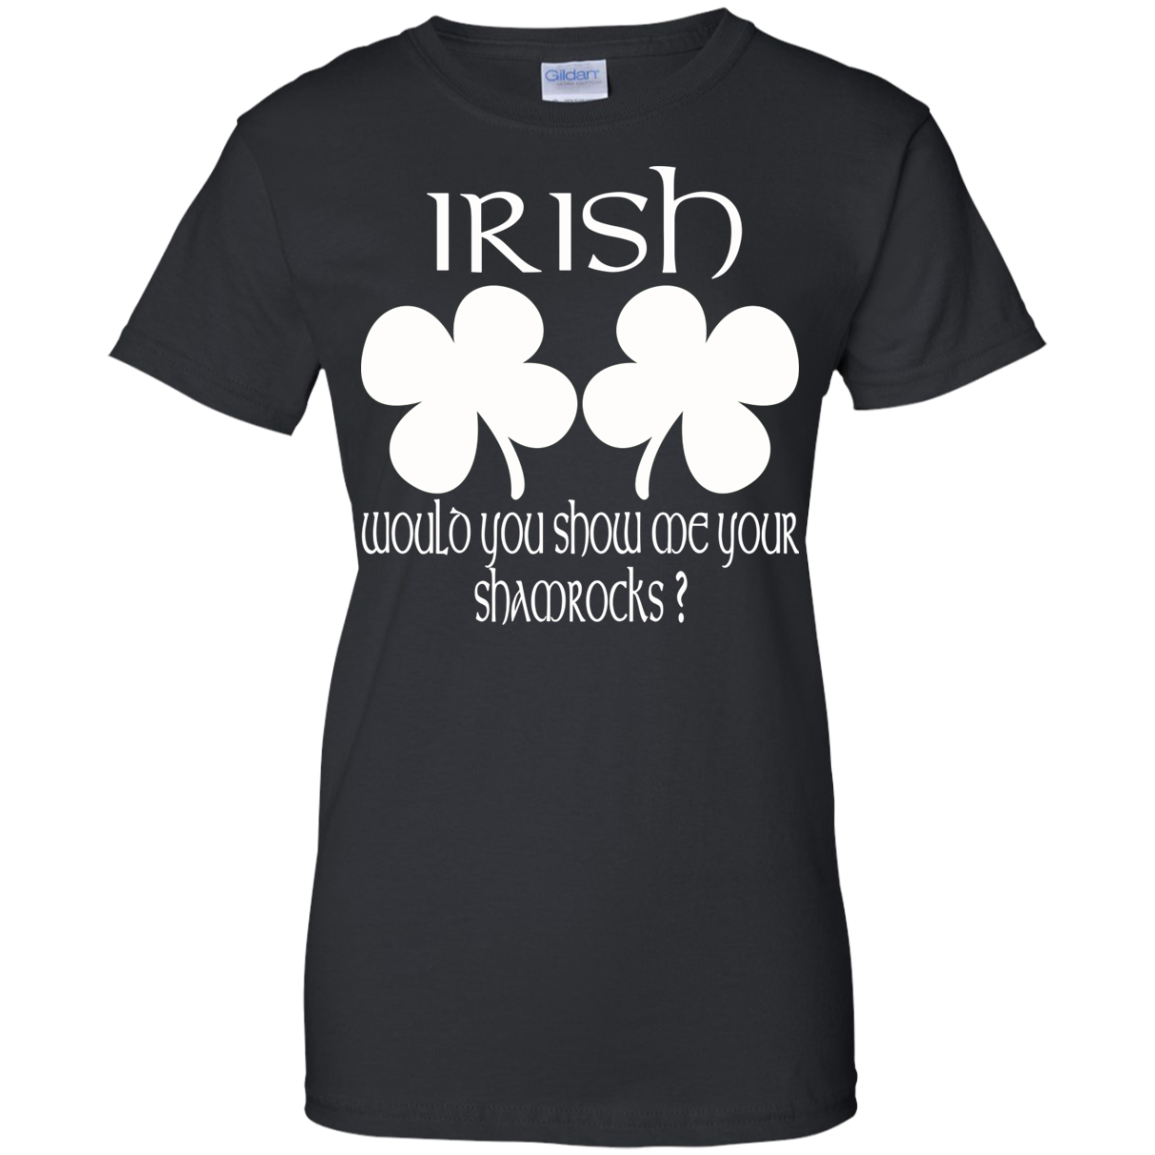 Would You Show Me Your Shamrocks St Patrick Day Clothing St Patrick's Day Shirts Hoodies For Men And Women - Blue Fox